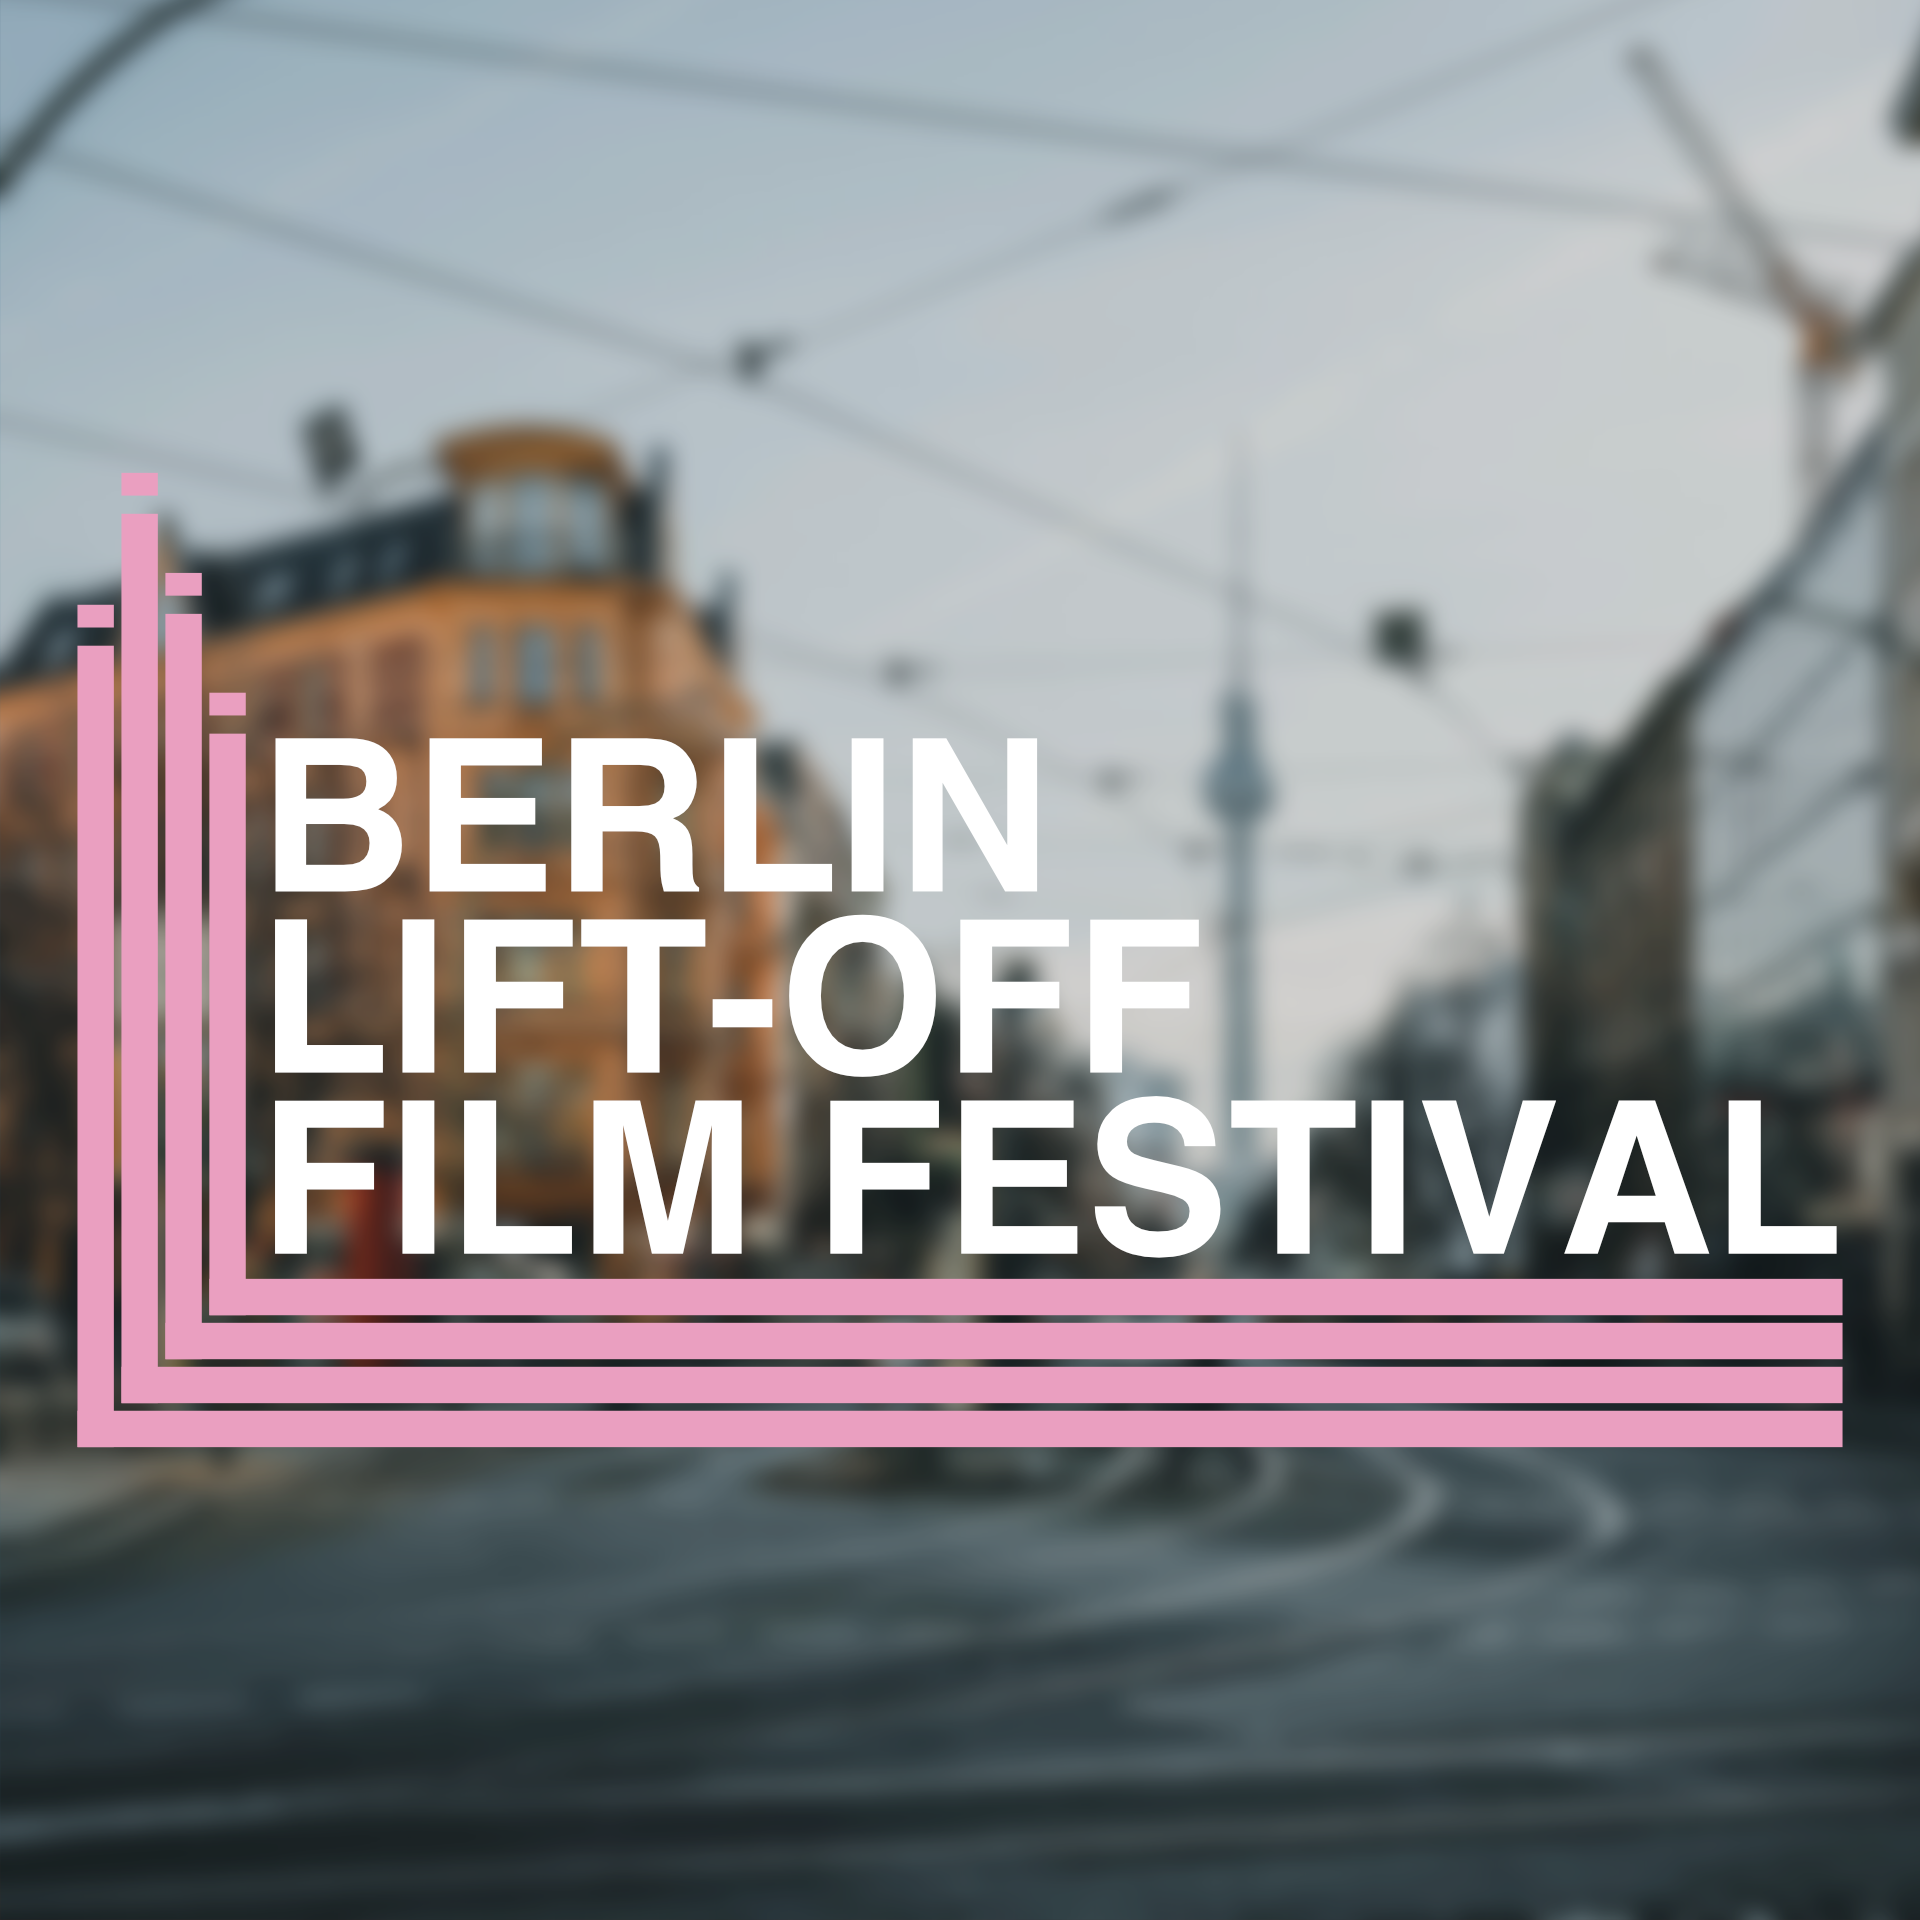 Berlin Lift-Off Film Festival 第10届柏林LIFT-OFF电影节(著名赛事)